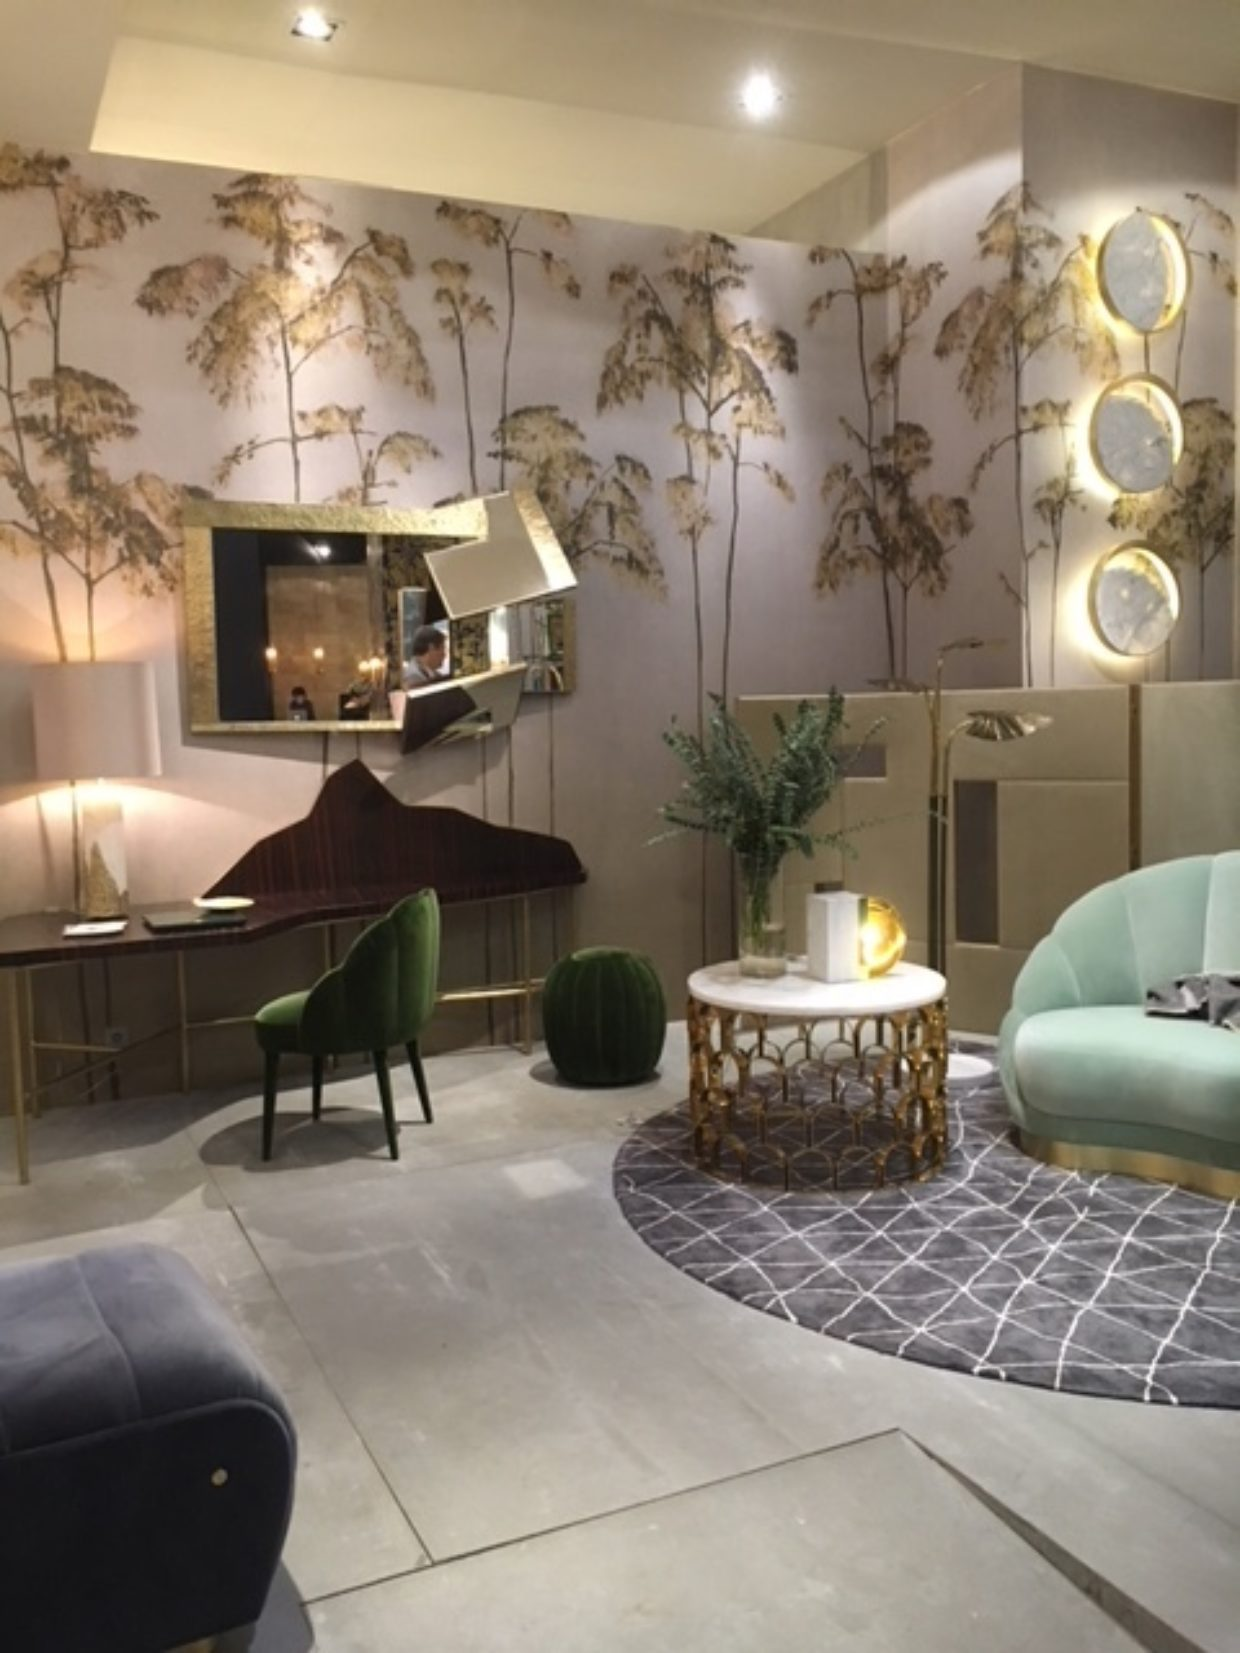 Decoration interieur 2018 - Revue de decoration interieure ...